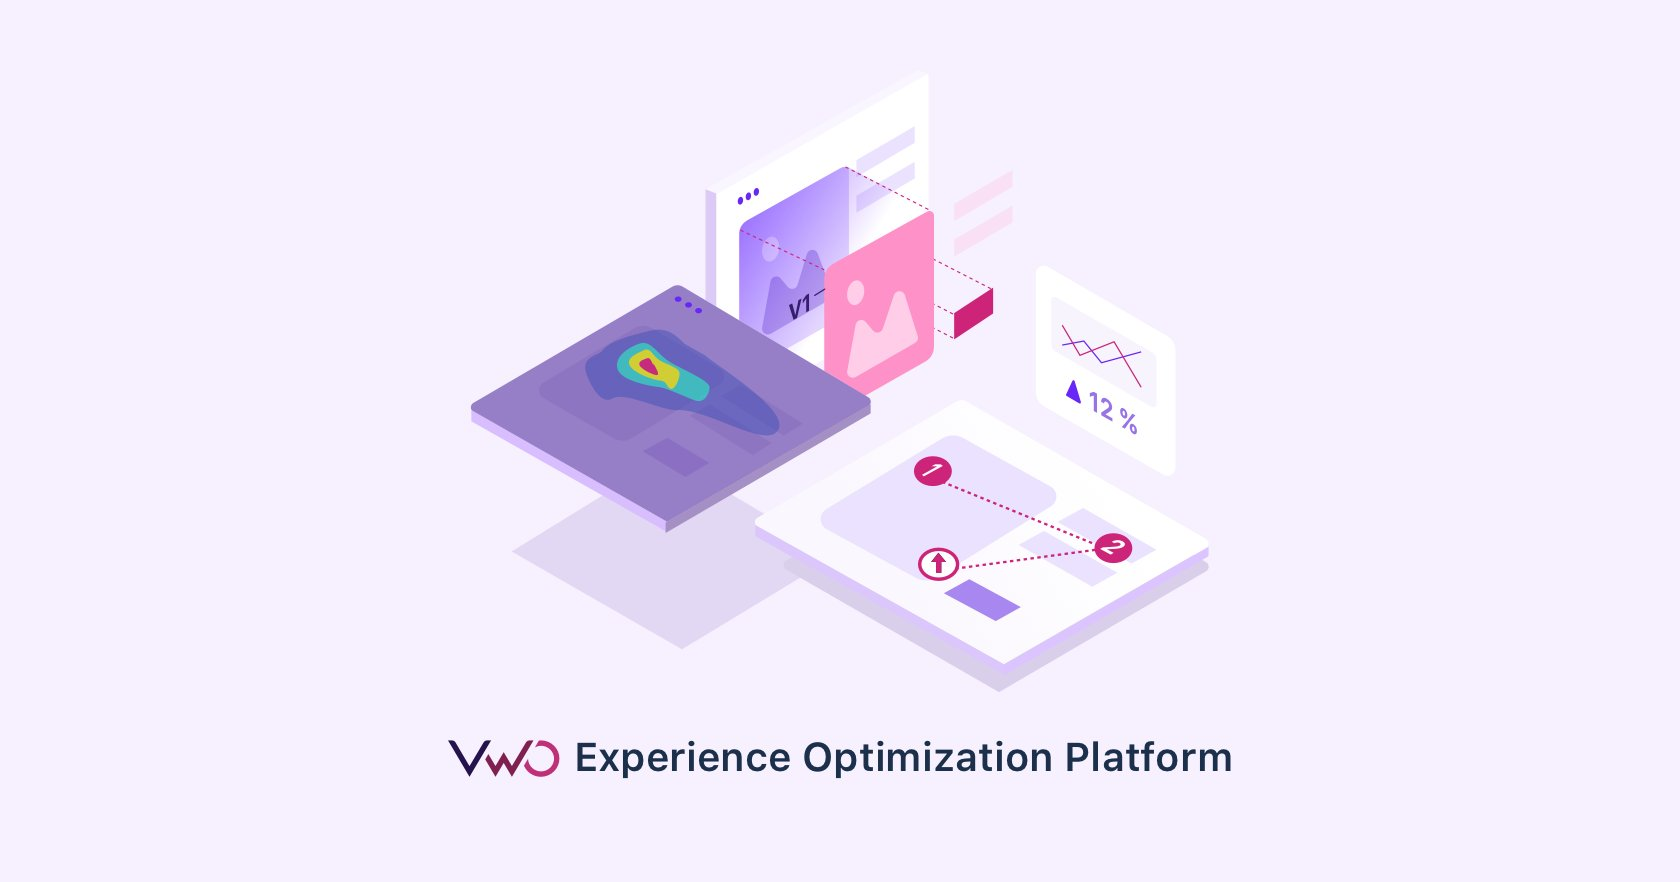 VWO Is Laying The Foundation For The Future Of Customer Experience Optimization